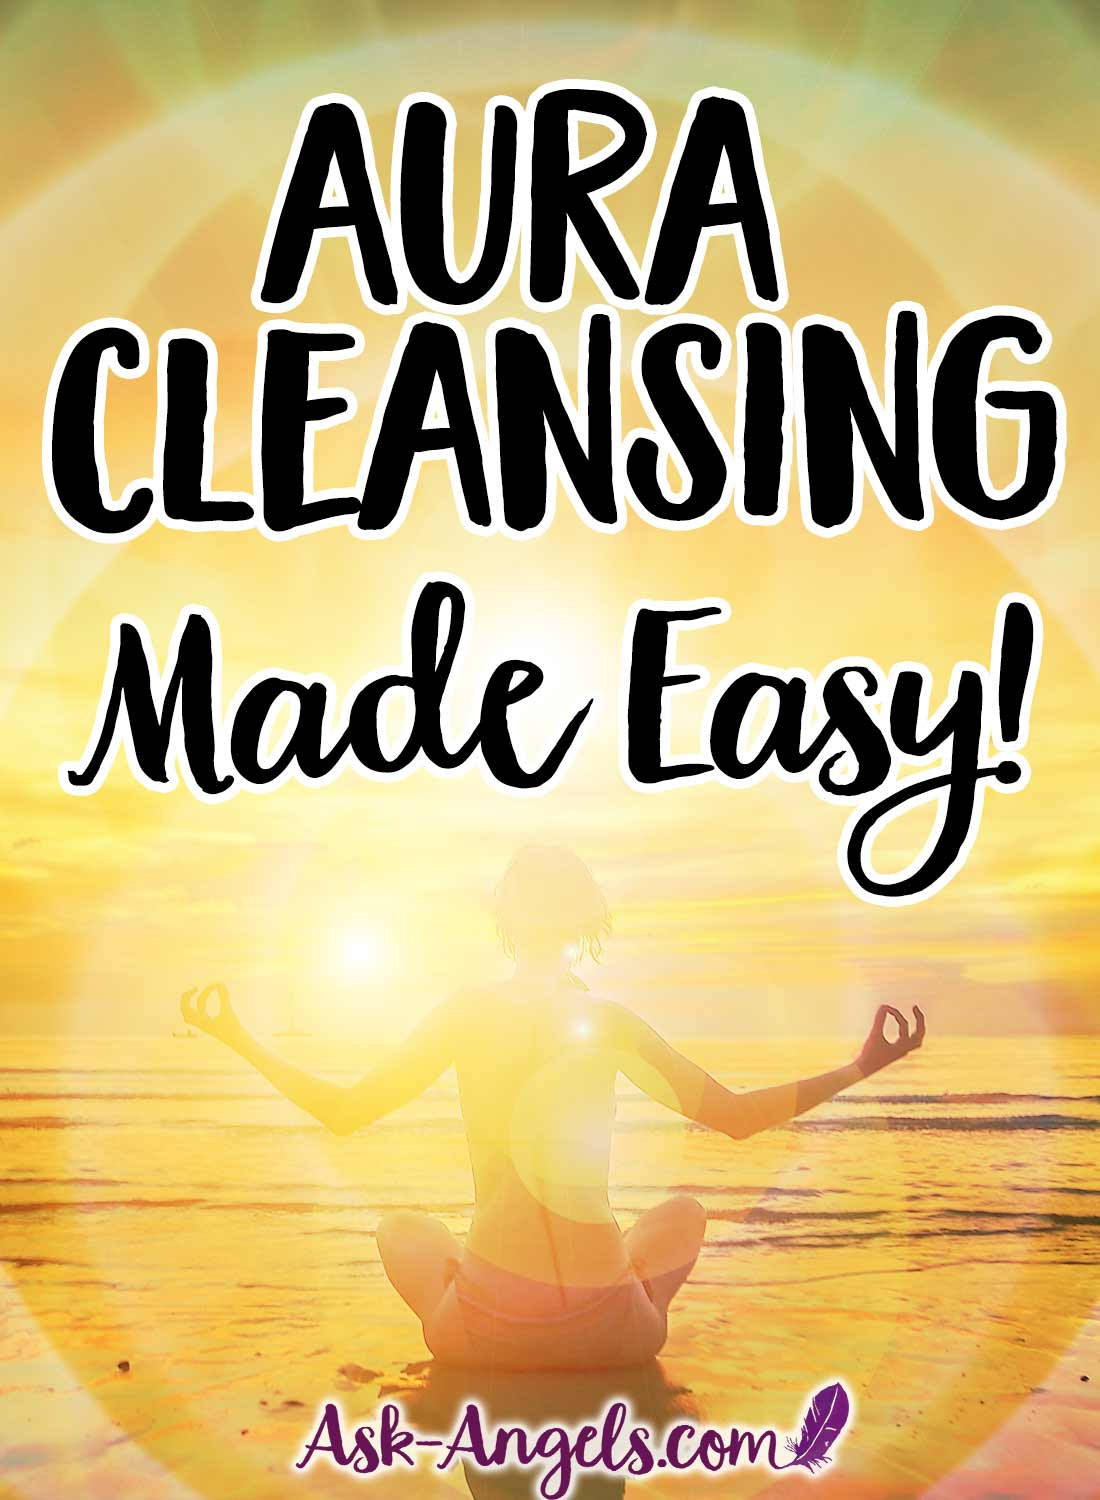 Aura Cleansing Made Easy with this powerful and yet simple technique